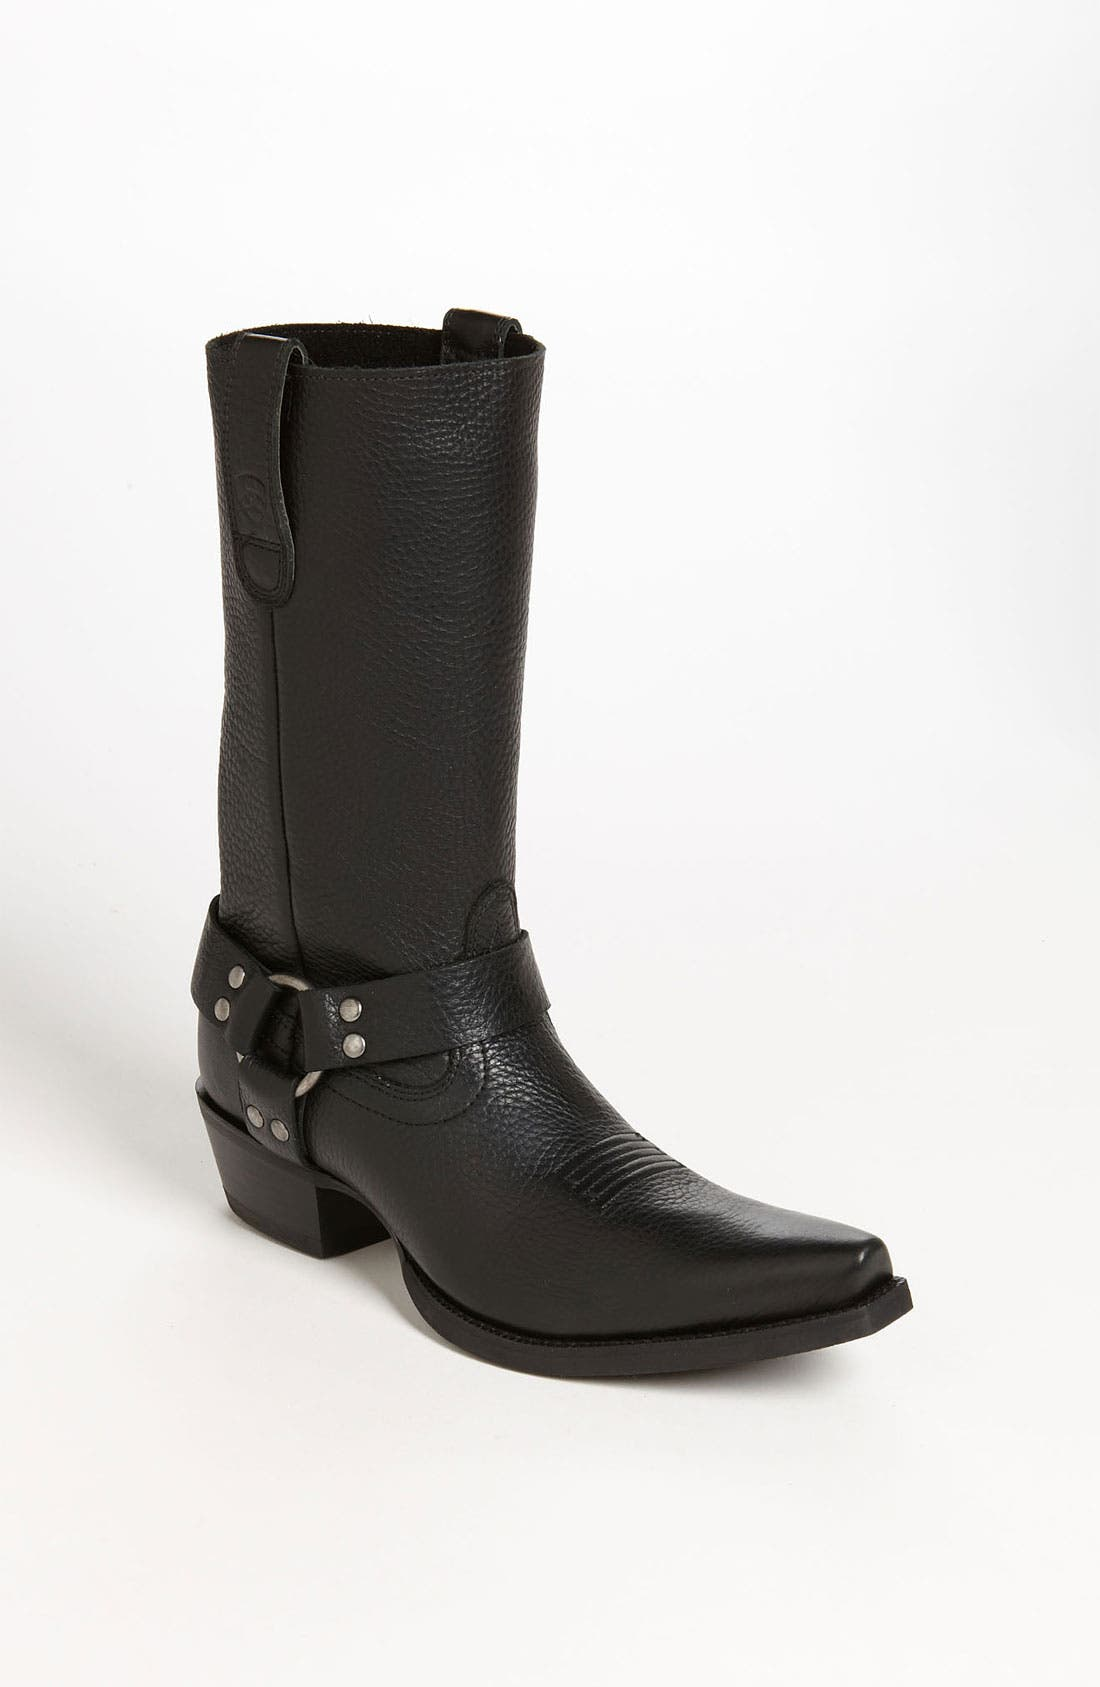 Alternate Image 1 Selected - Ariat 'Hollywood' Boot